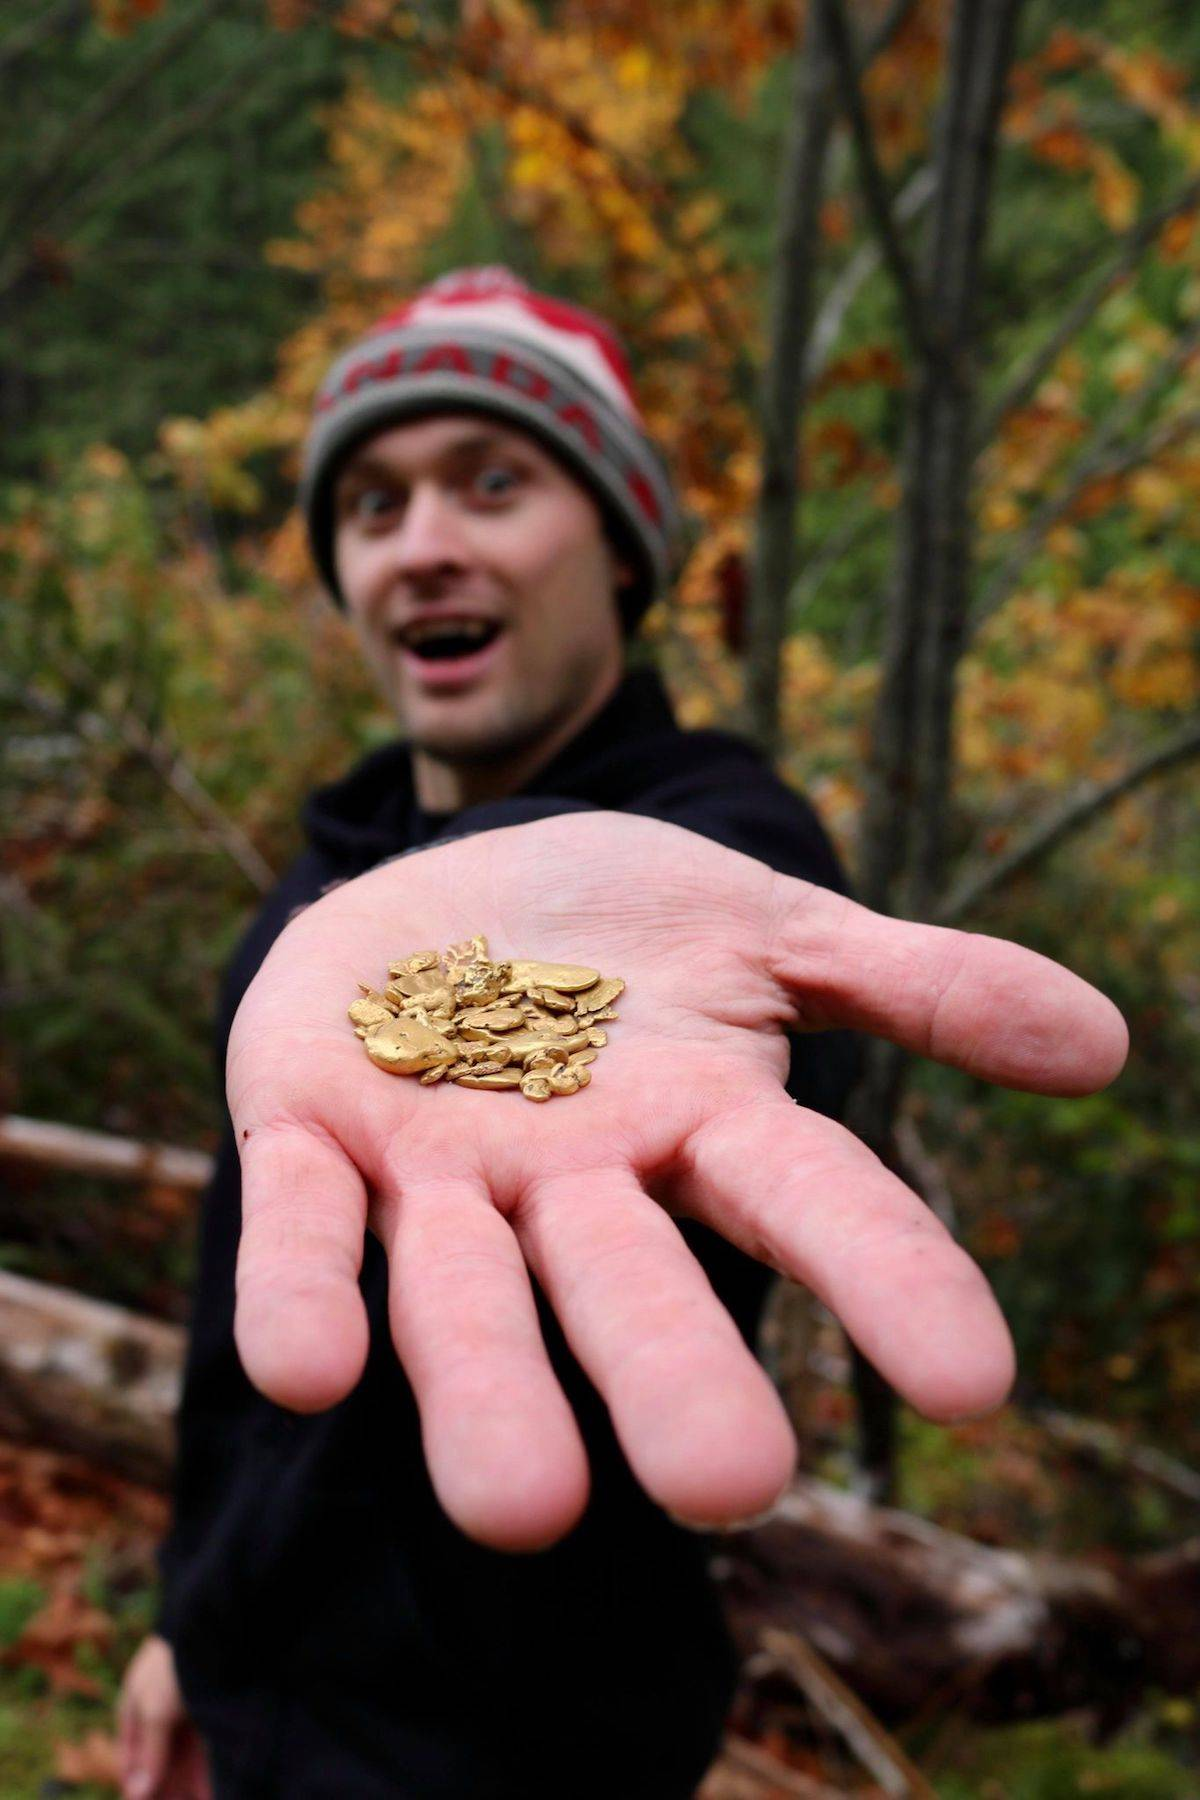 Paul Larouche shows off a handful of gold pieces he's found while gold panning, gold sniping and using a metal detector in Sooke. (Aaron Guillen/News Staff)